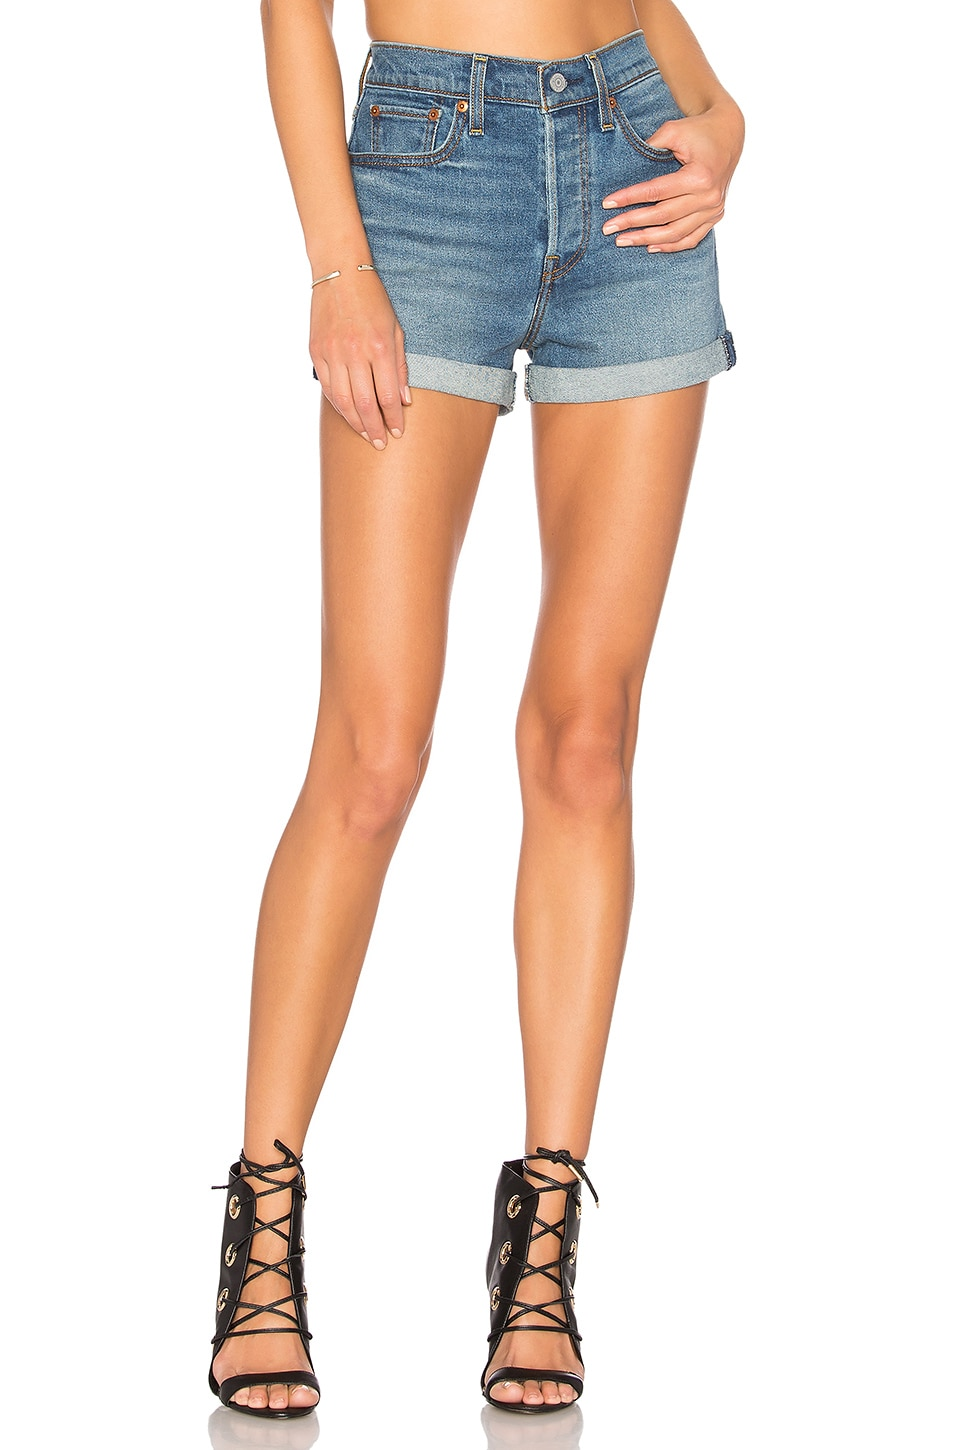 LEVI'S High Rise Wedgie Short in Blue Cheer